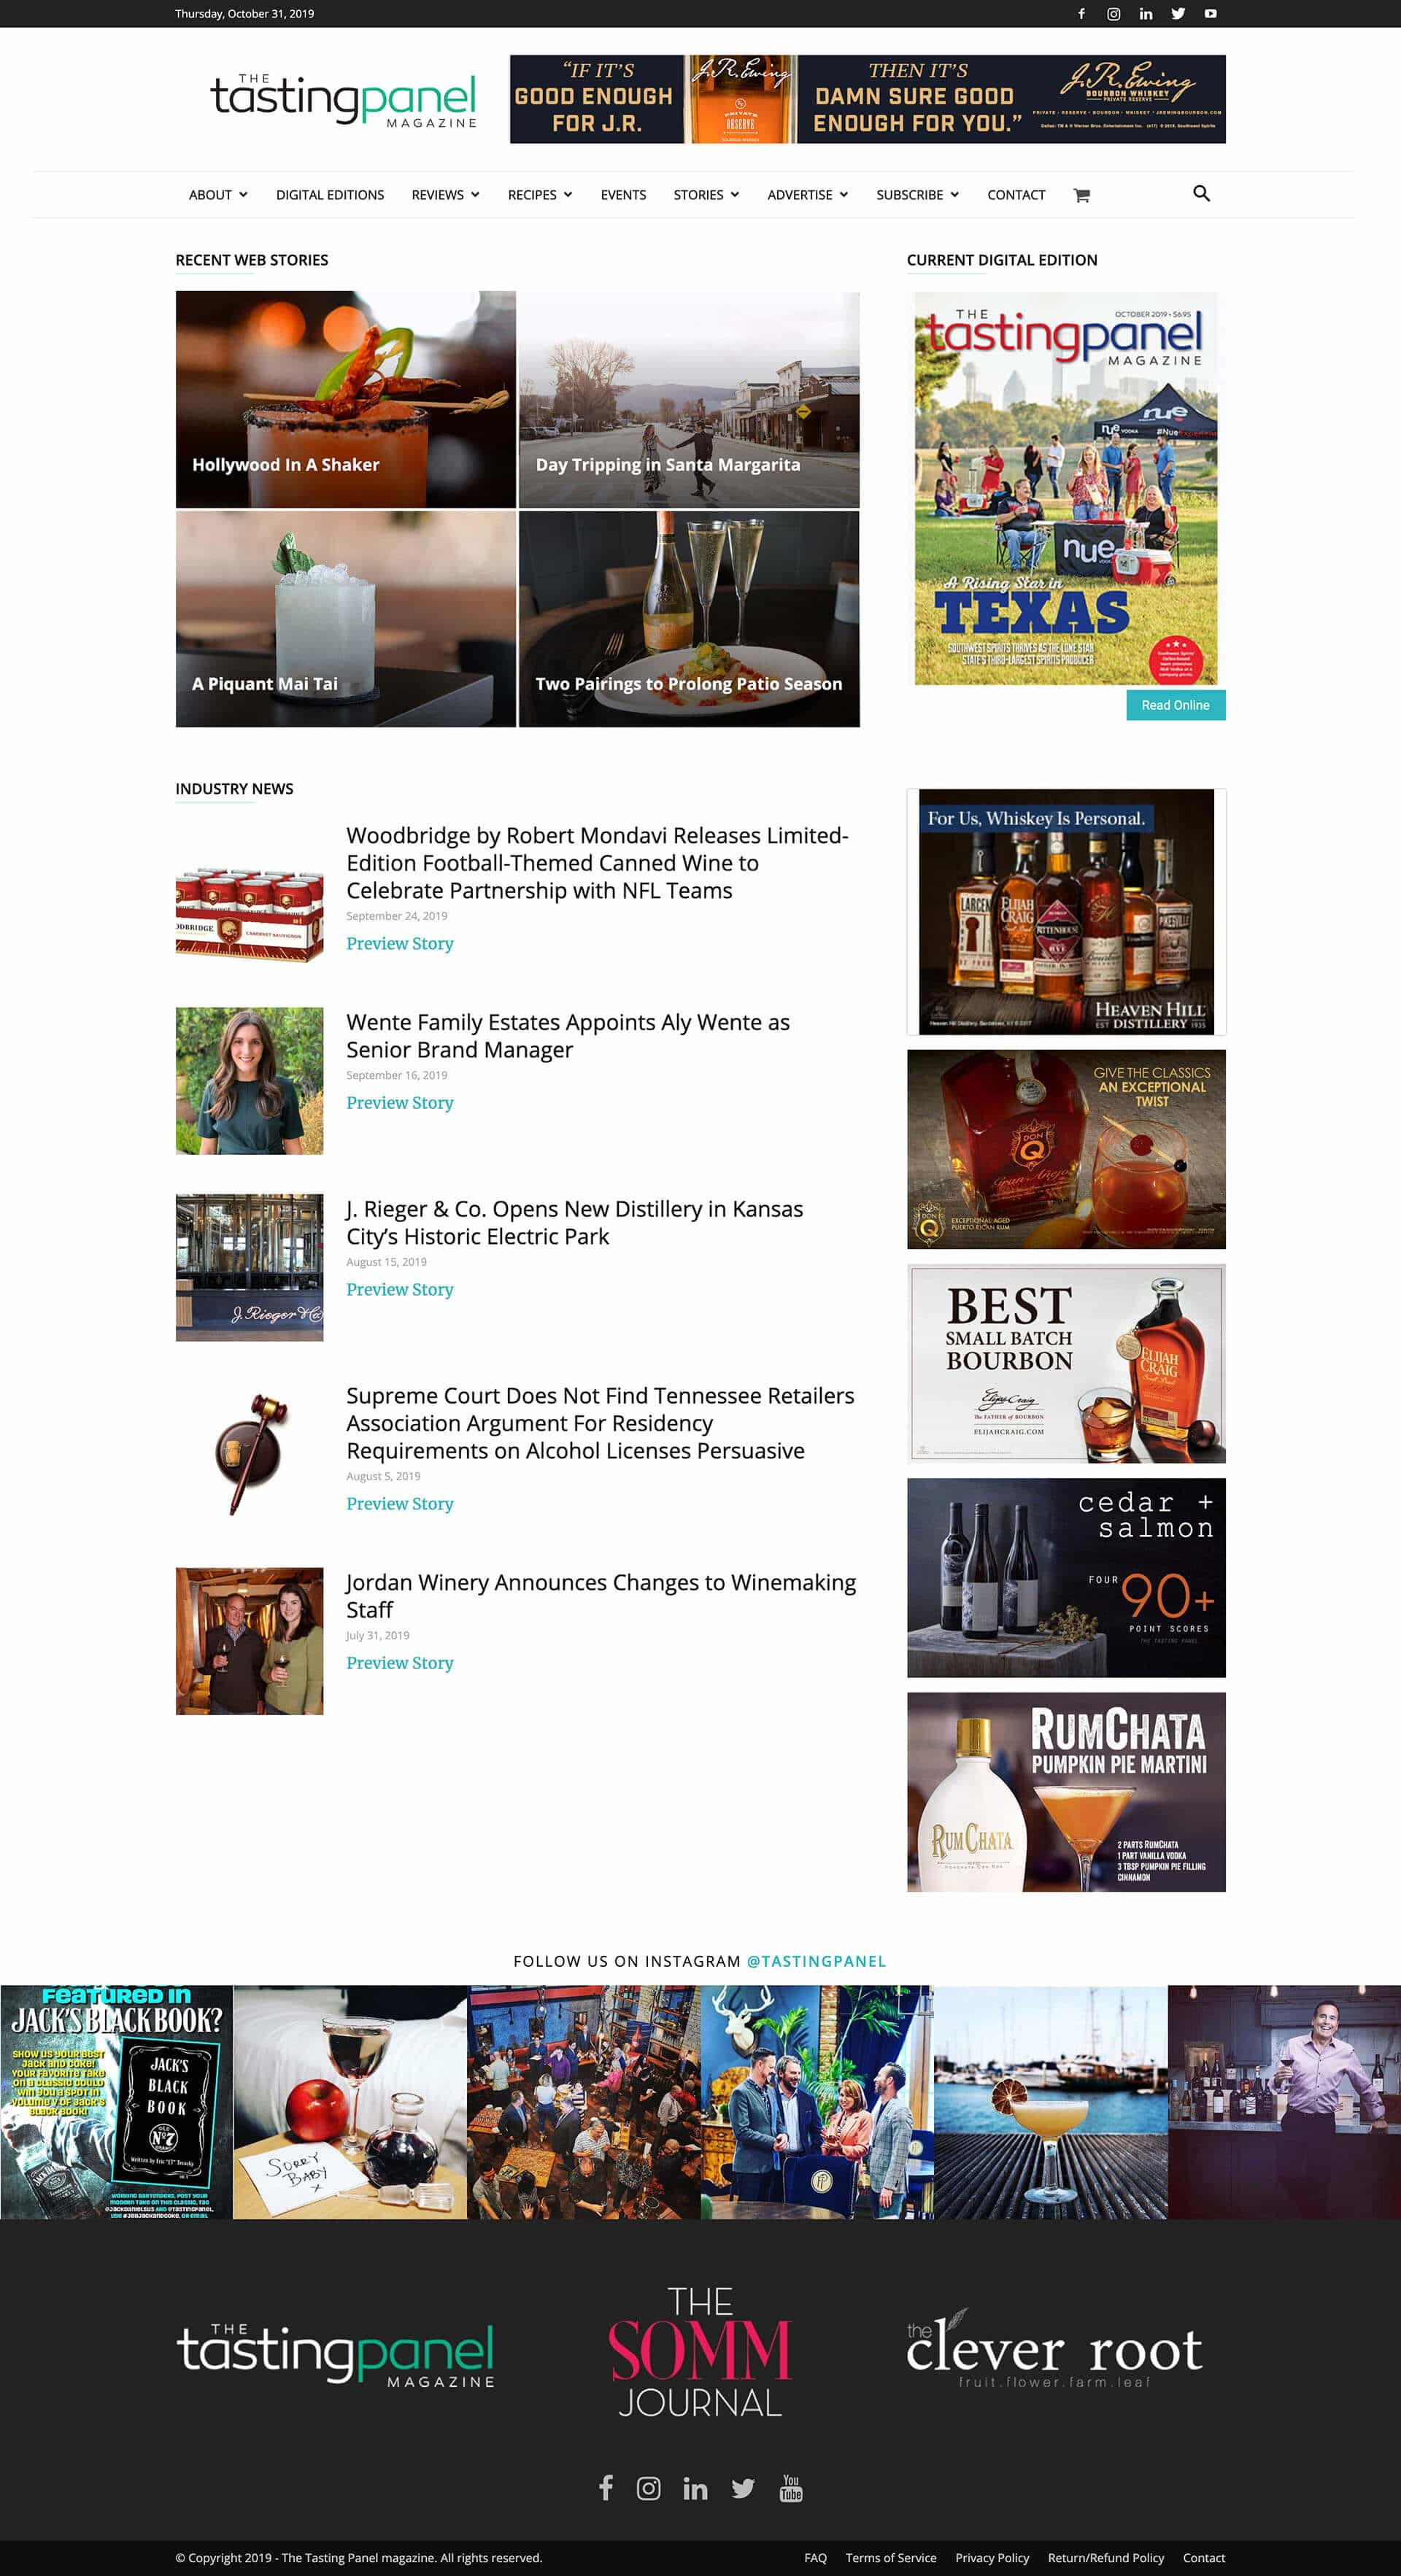 The Tasting Panel Magazine Website Home Page